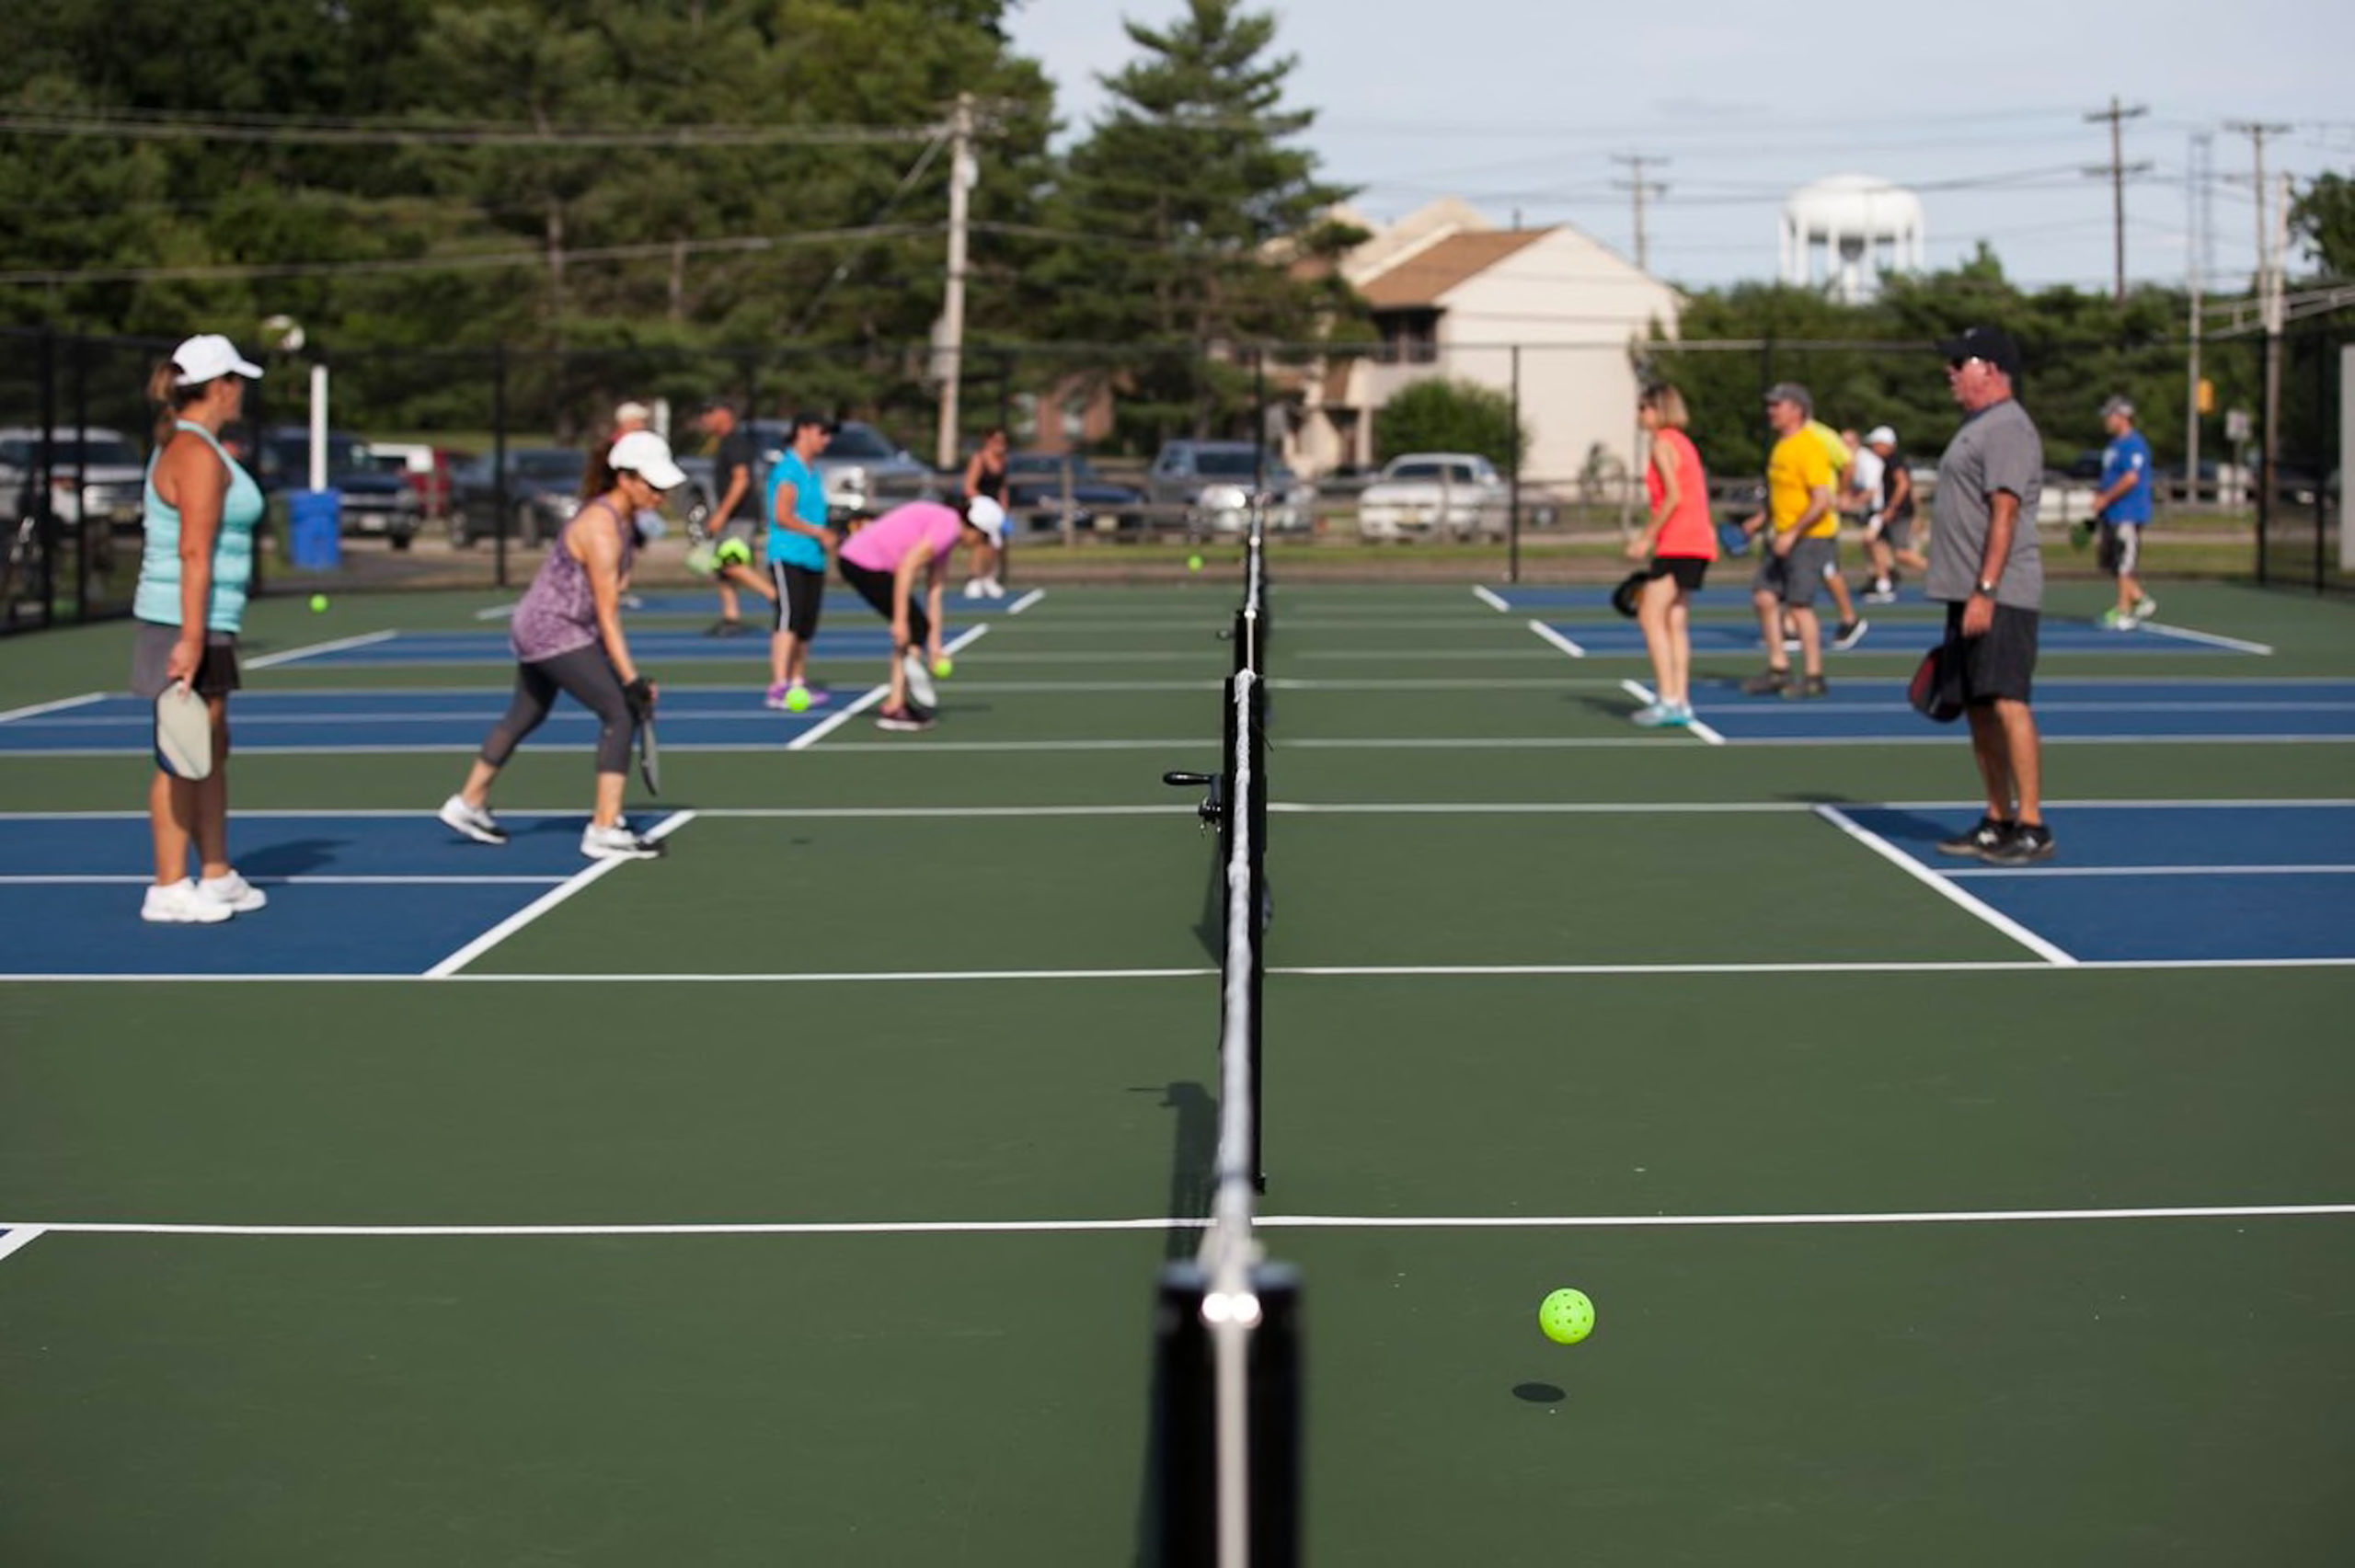 Pickleball participation is up!